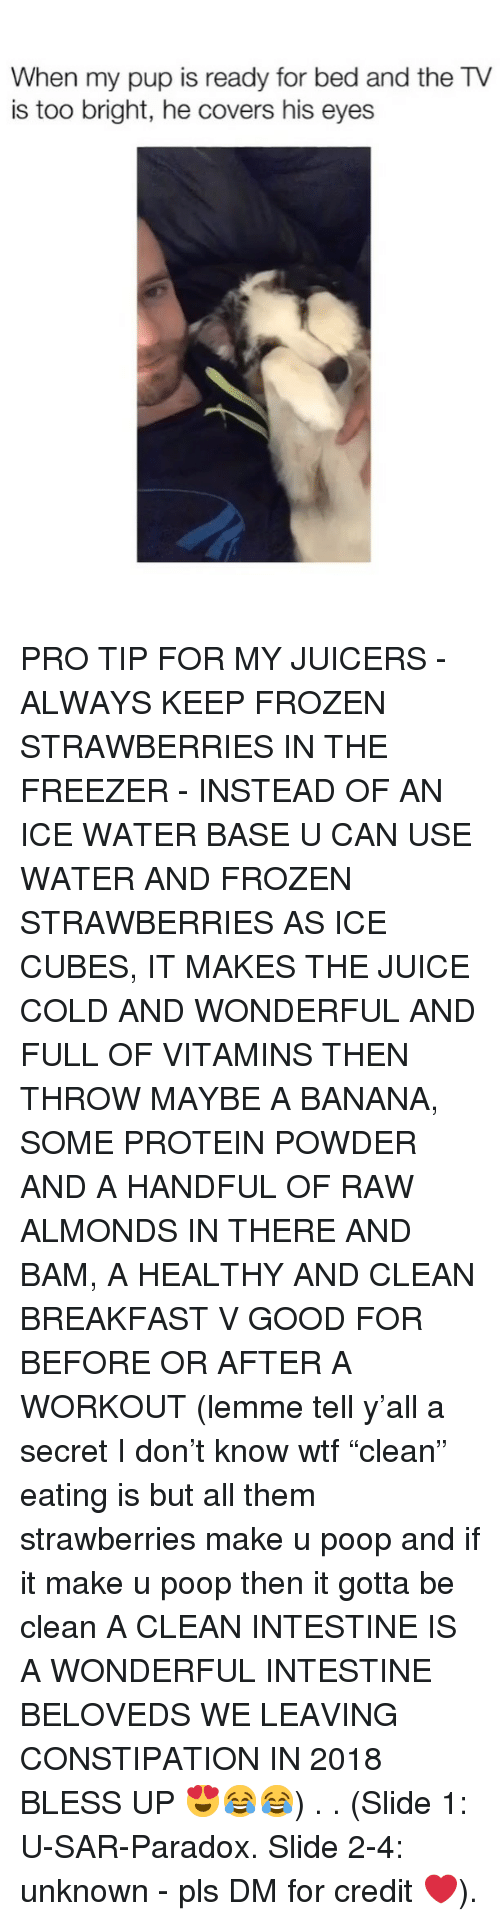 "Bless Up, Frozen, and Juice: When my pup is ready for bed and the TV  is too bright, he covers his eyes PRO TIP FOR MY JUICERS - ALWAYS KEEP FROZEN STRAWBERRIES IN THE FREEZER - INSTEAD OF AN ICE WATER BASE U CAN USE WATER AND FROZEN STRAWBERRIES AS ICE CUBES, IT MAKES THE JUICE COLD AND WONDERFUL AND FULL OF VITAMINS THEN THROW MAYBE A BANANA, SOME PROTEIN POWDER AND A HANDFUL OF RAW ALMONDS IN THERE AND BAM, A HEALTHY AND CLEAN BREAKFAST V GOOD FOR BEFORE OR AFTER A WORKOUT (lemme tell y'all a secret I don't know wtf ""clean"" eating is but all them strawberries make u poop and if it make u poop then it gotta be clean A CLEAN INTESTINE IS A WONDERFUL INTESTINE BELOVEDS WE LEAVING CONSTIPATION IN 2018 BLESS UP 😍😂😂) . . (Slide 1: U-SAR-Paradox. Slide 2-4: unknown - pls DM for credit ❤️)."